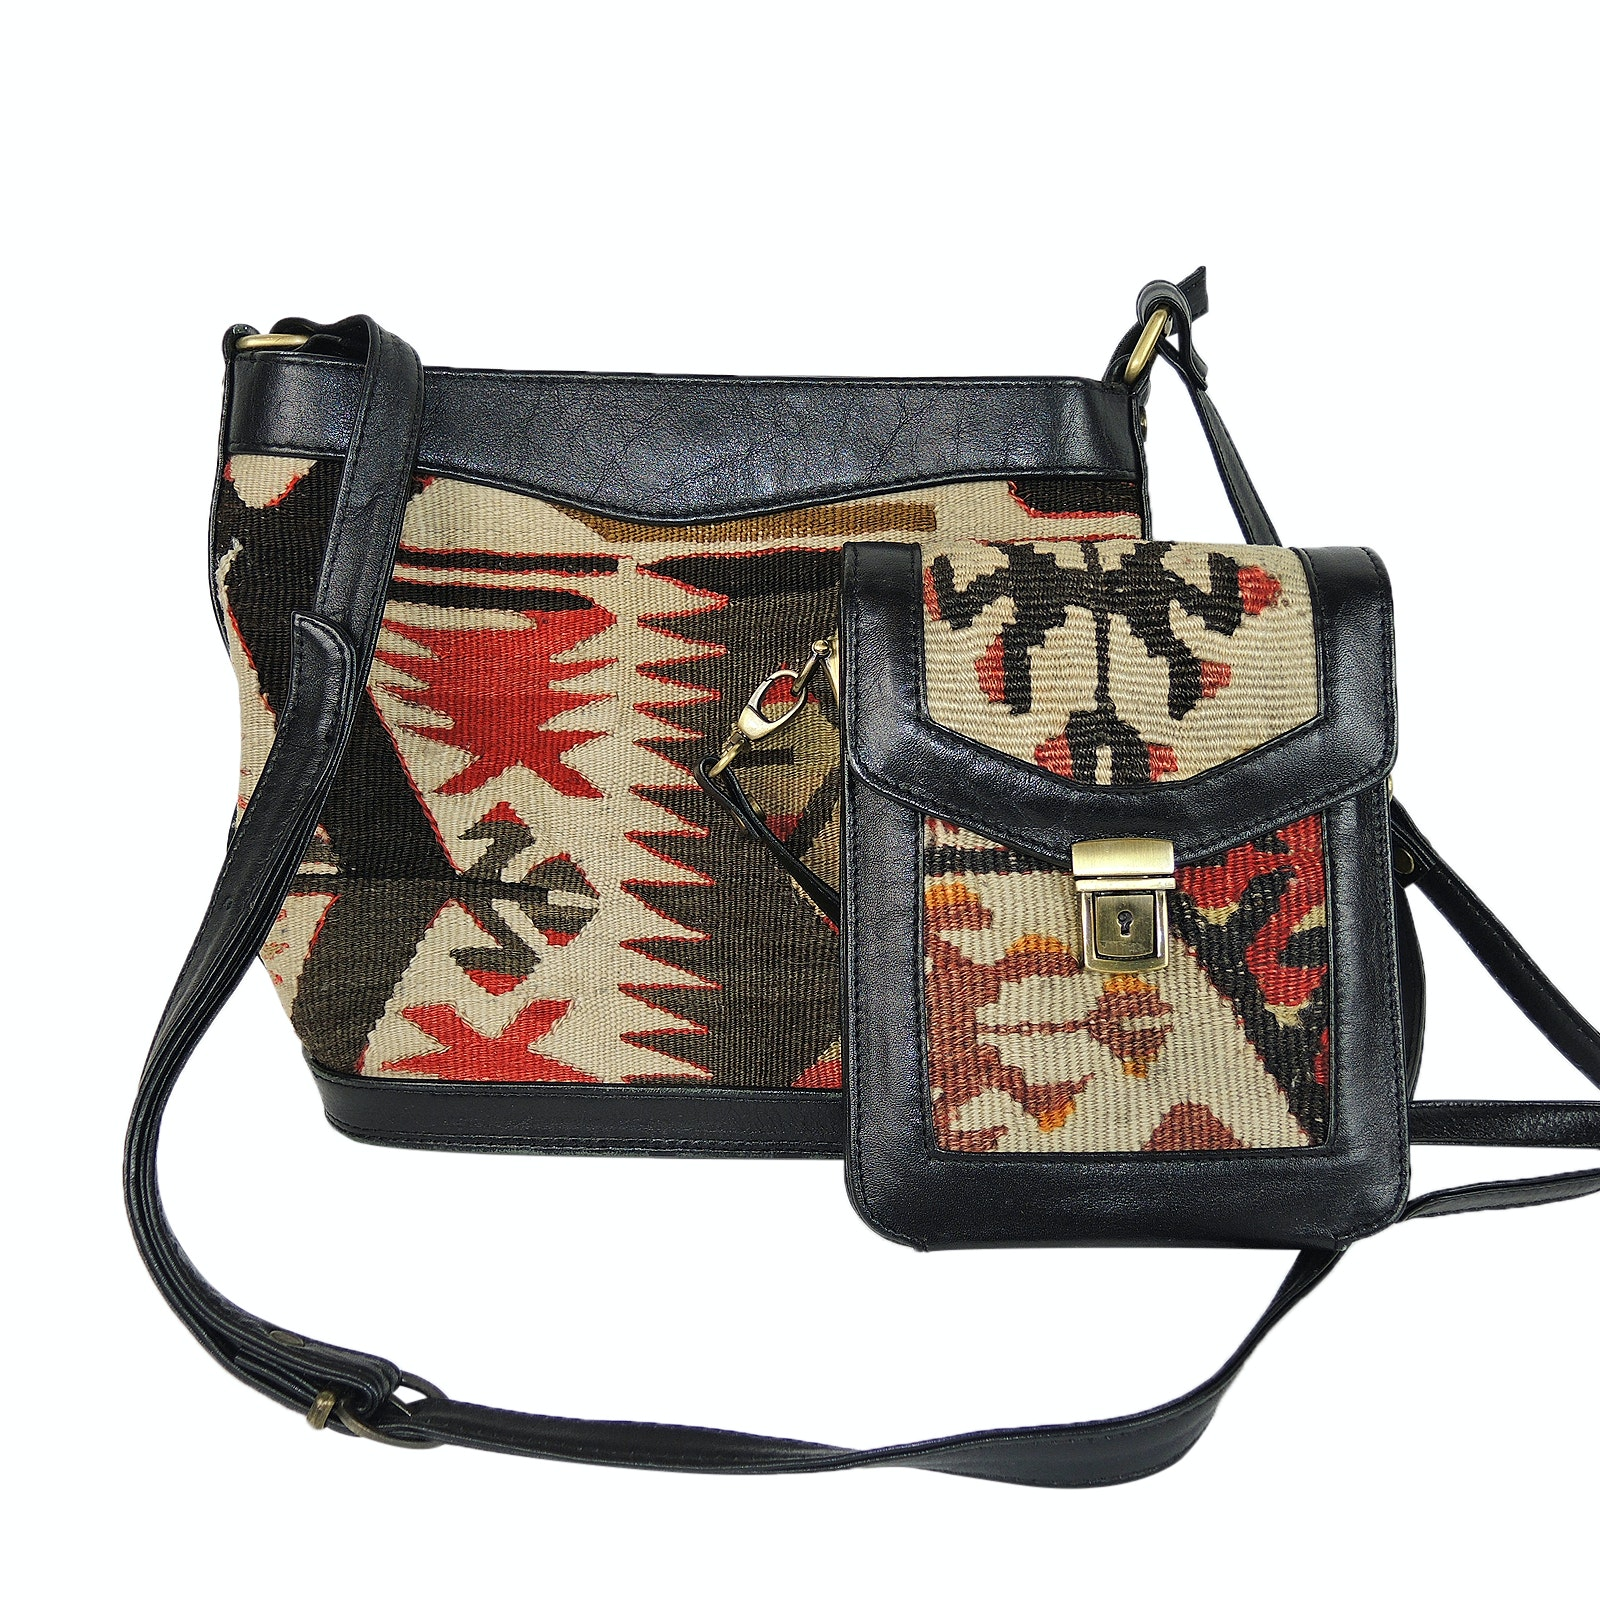 Kilim Style Shoulder Bag and Crossbody Wallet with Leather Trim